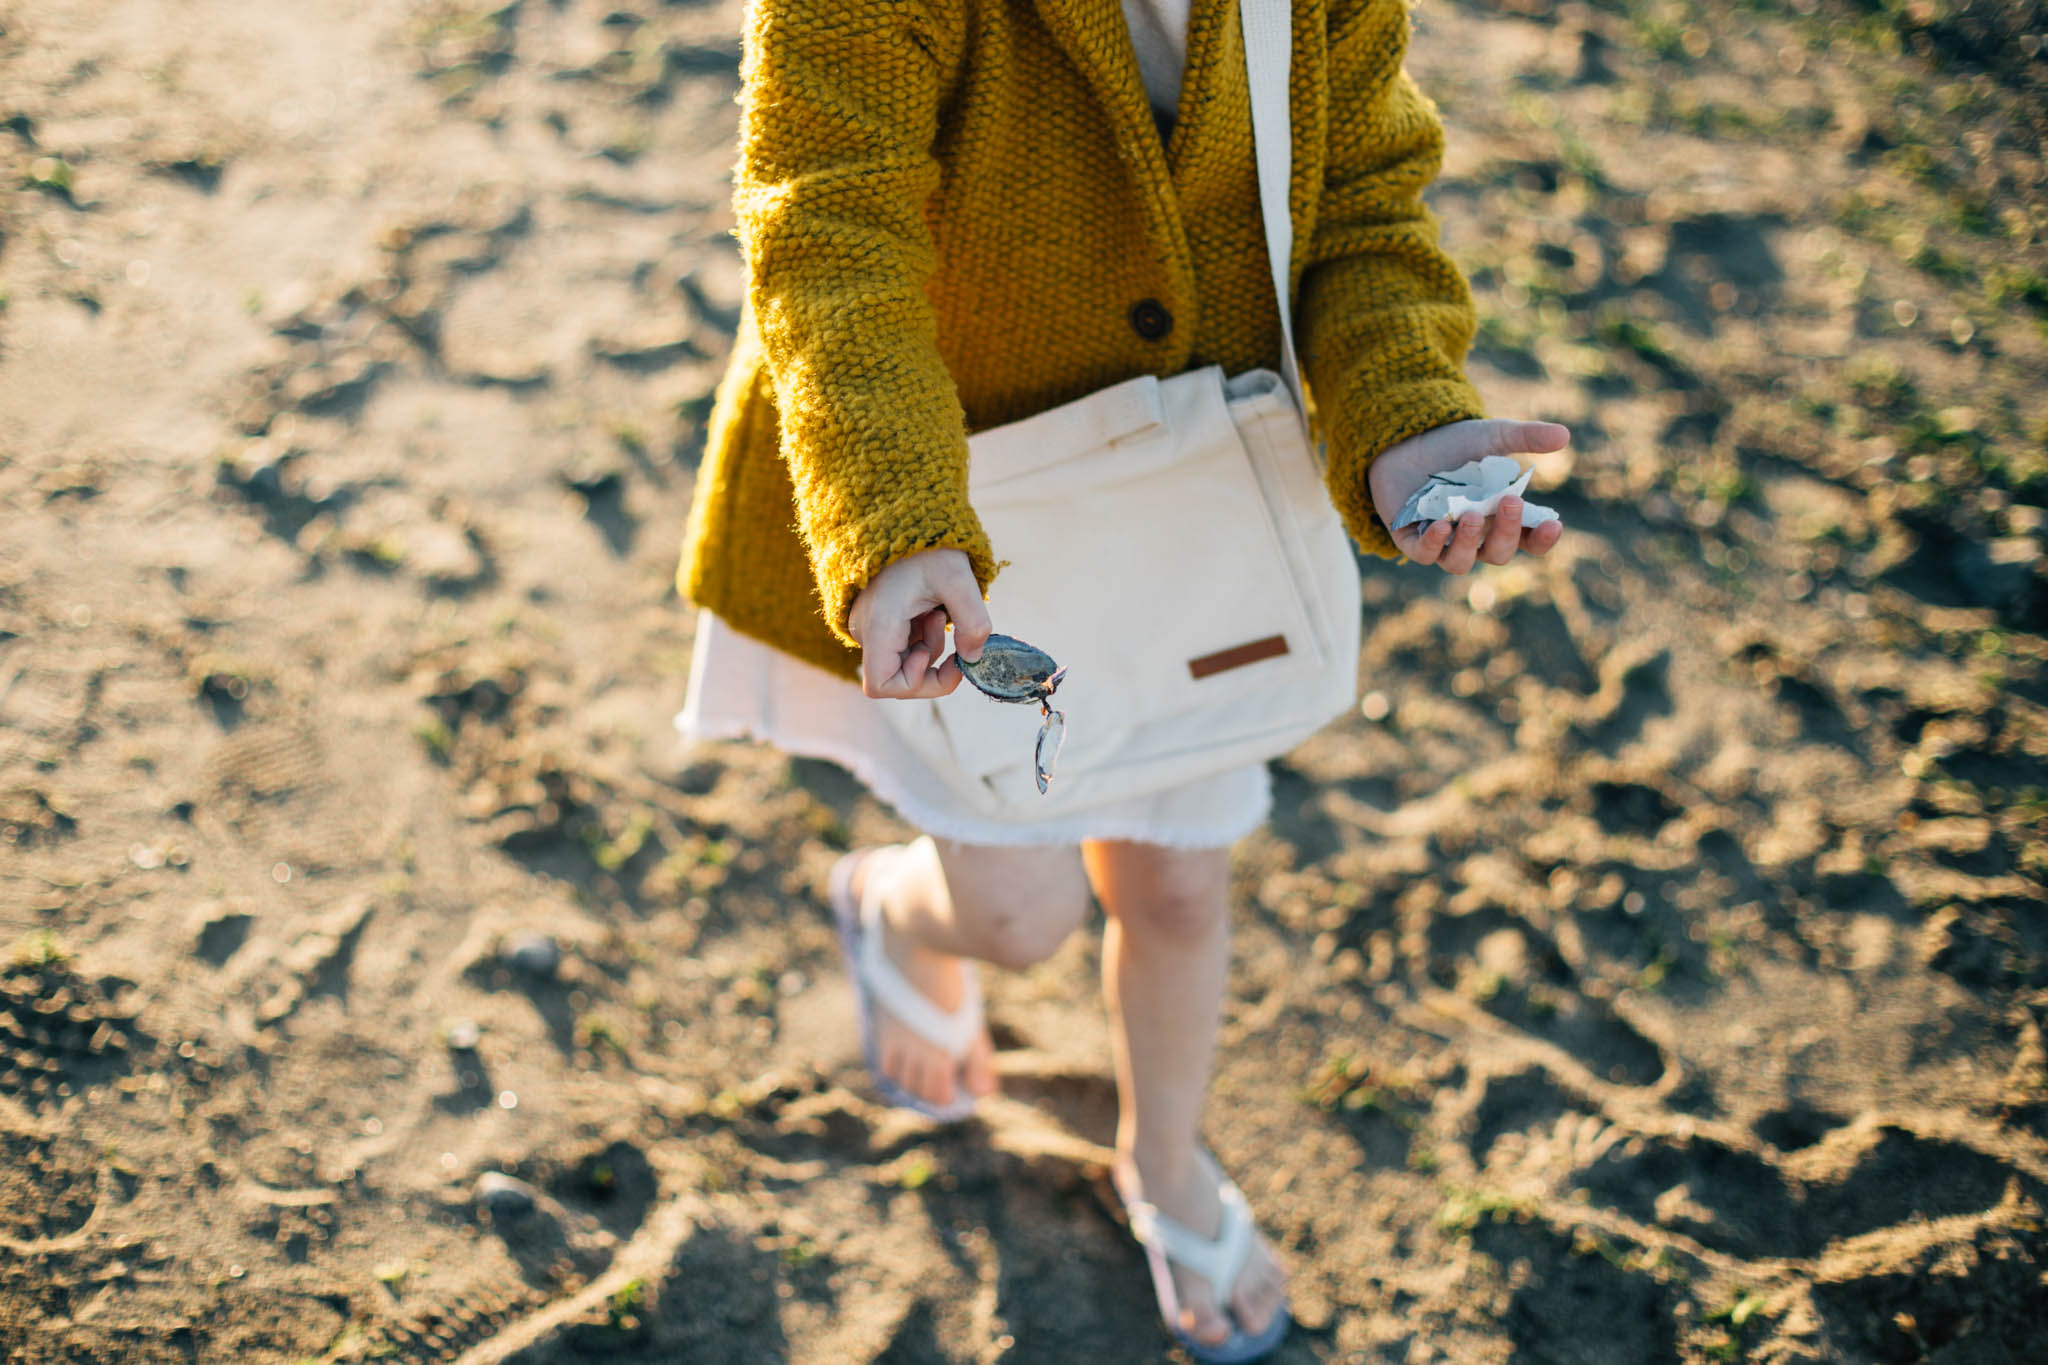 Vancouver Chlidren's Fashion Lifestyle Product Photographer -Emmy Lou Virginia Photography-7.jpg